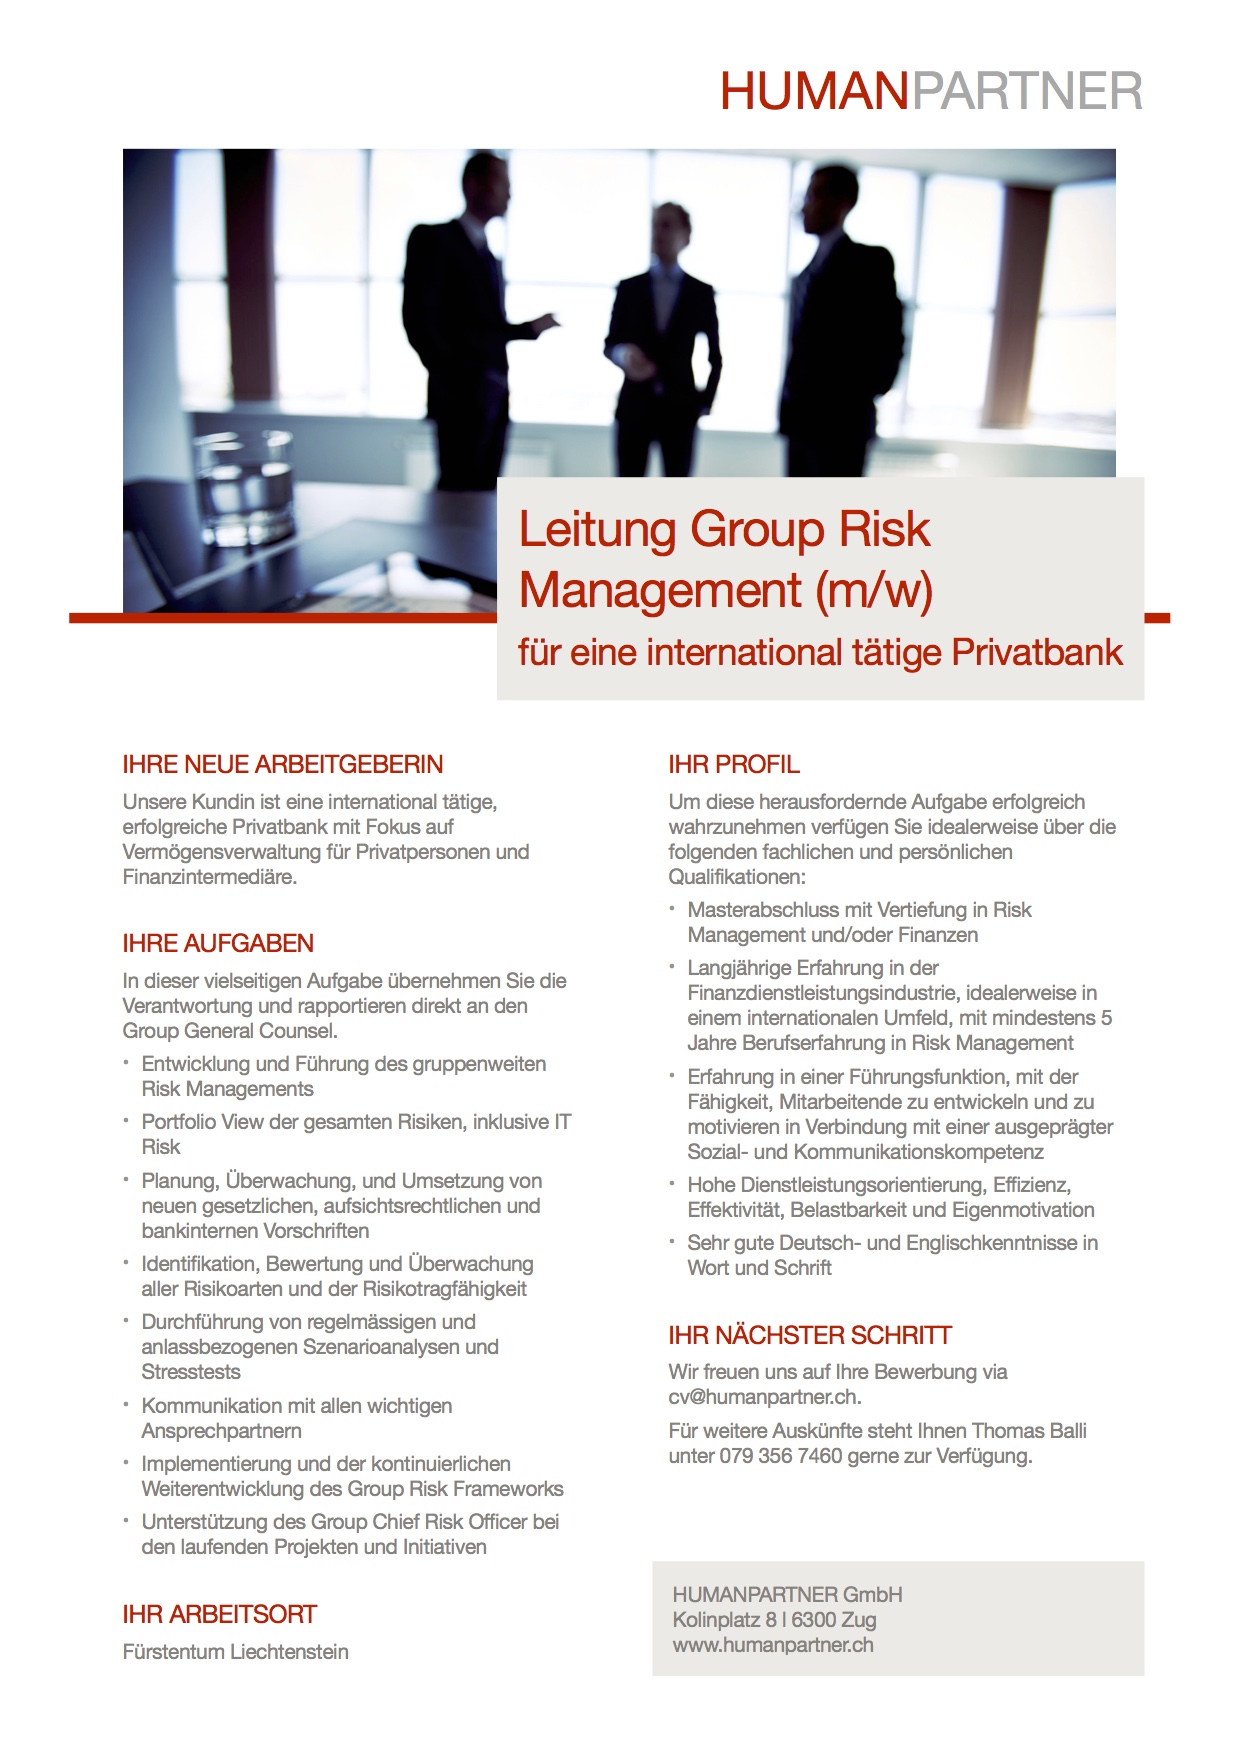 Leitung Group Risk Management - 2018